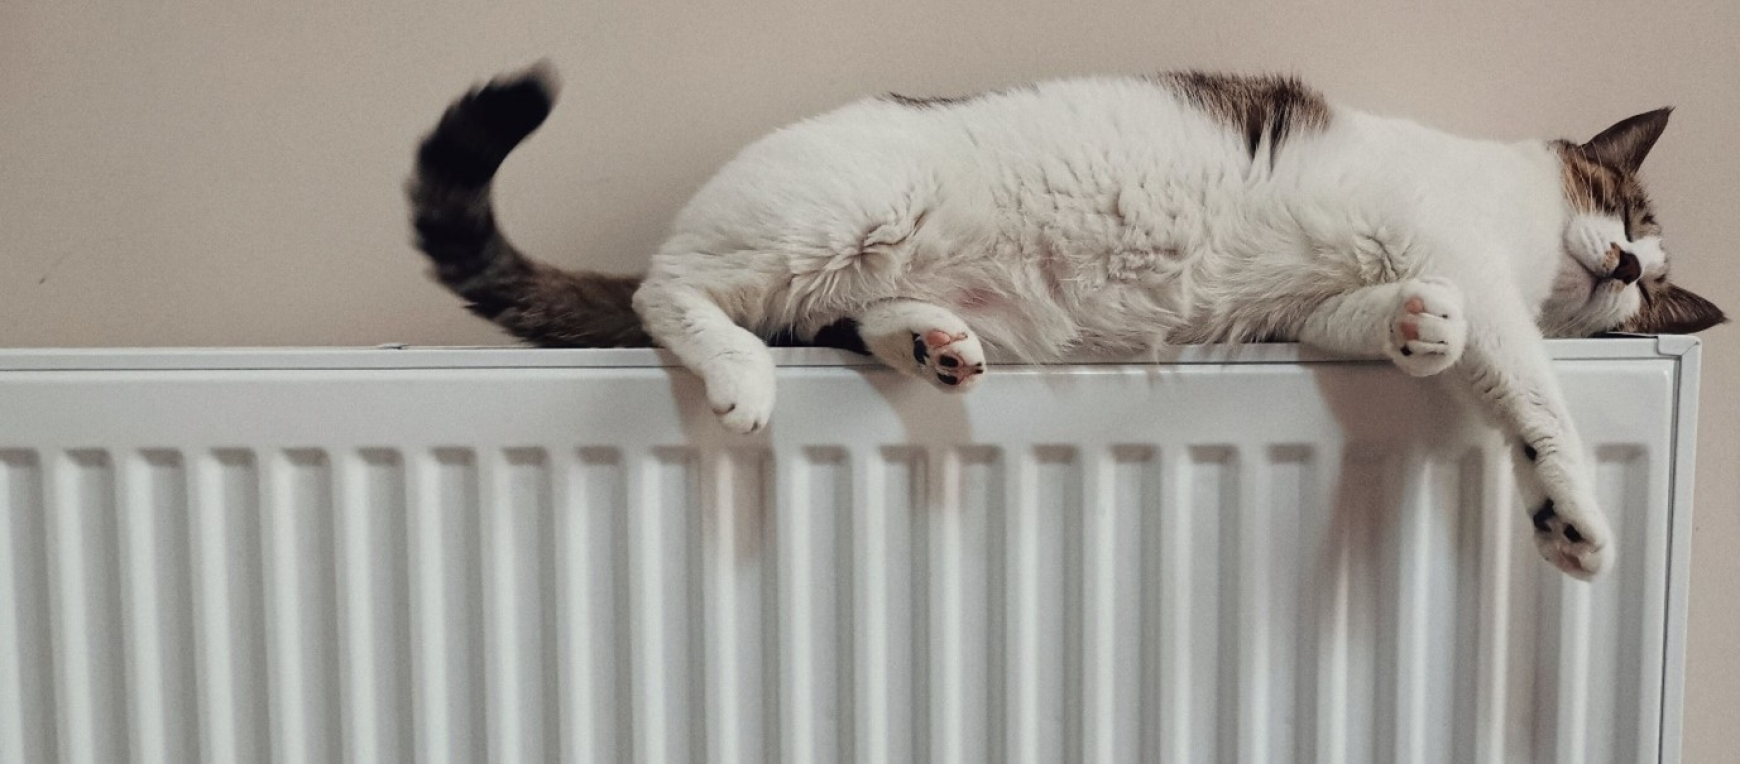 Cat sleeping on top of a radiator